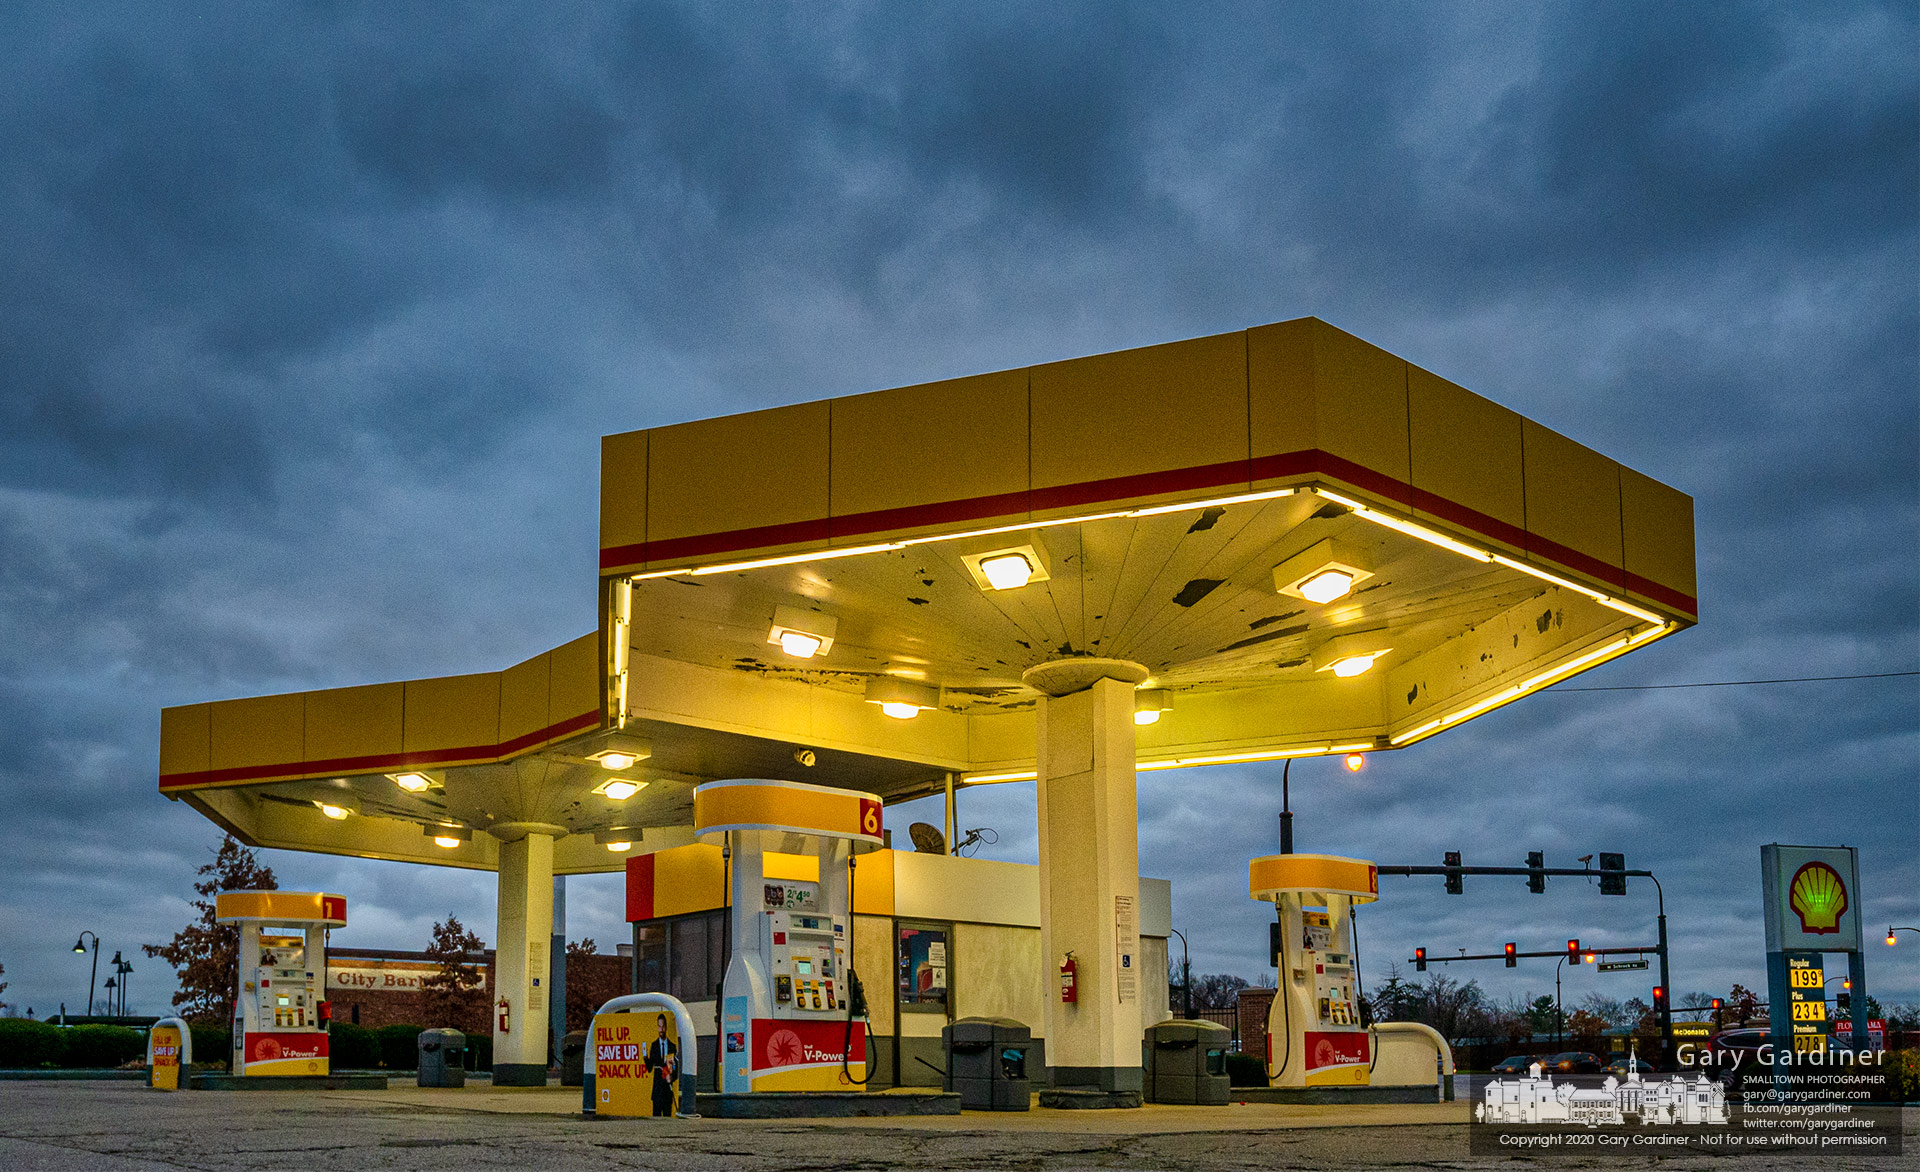 The Shell gas station at Schrock and South State is brightly lit in the late afternoon light marking it is open for business on Thanksgiving day. My Final Photo for Nov. 26, 2020.